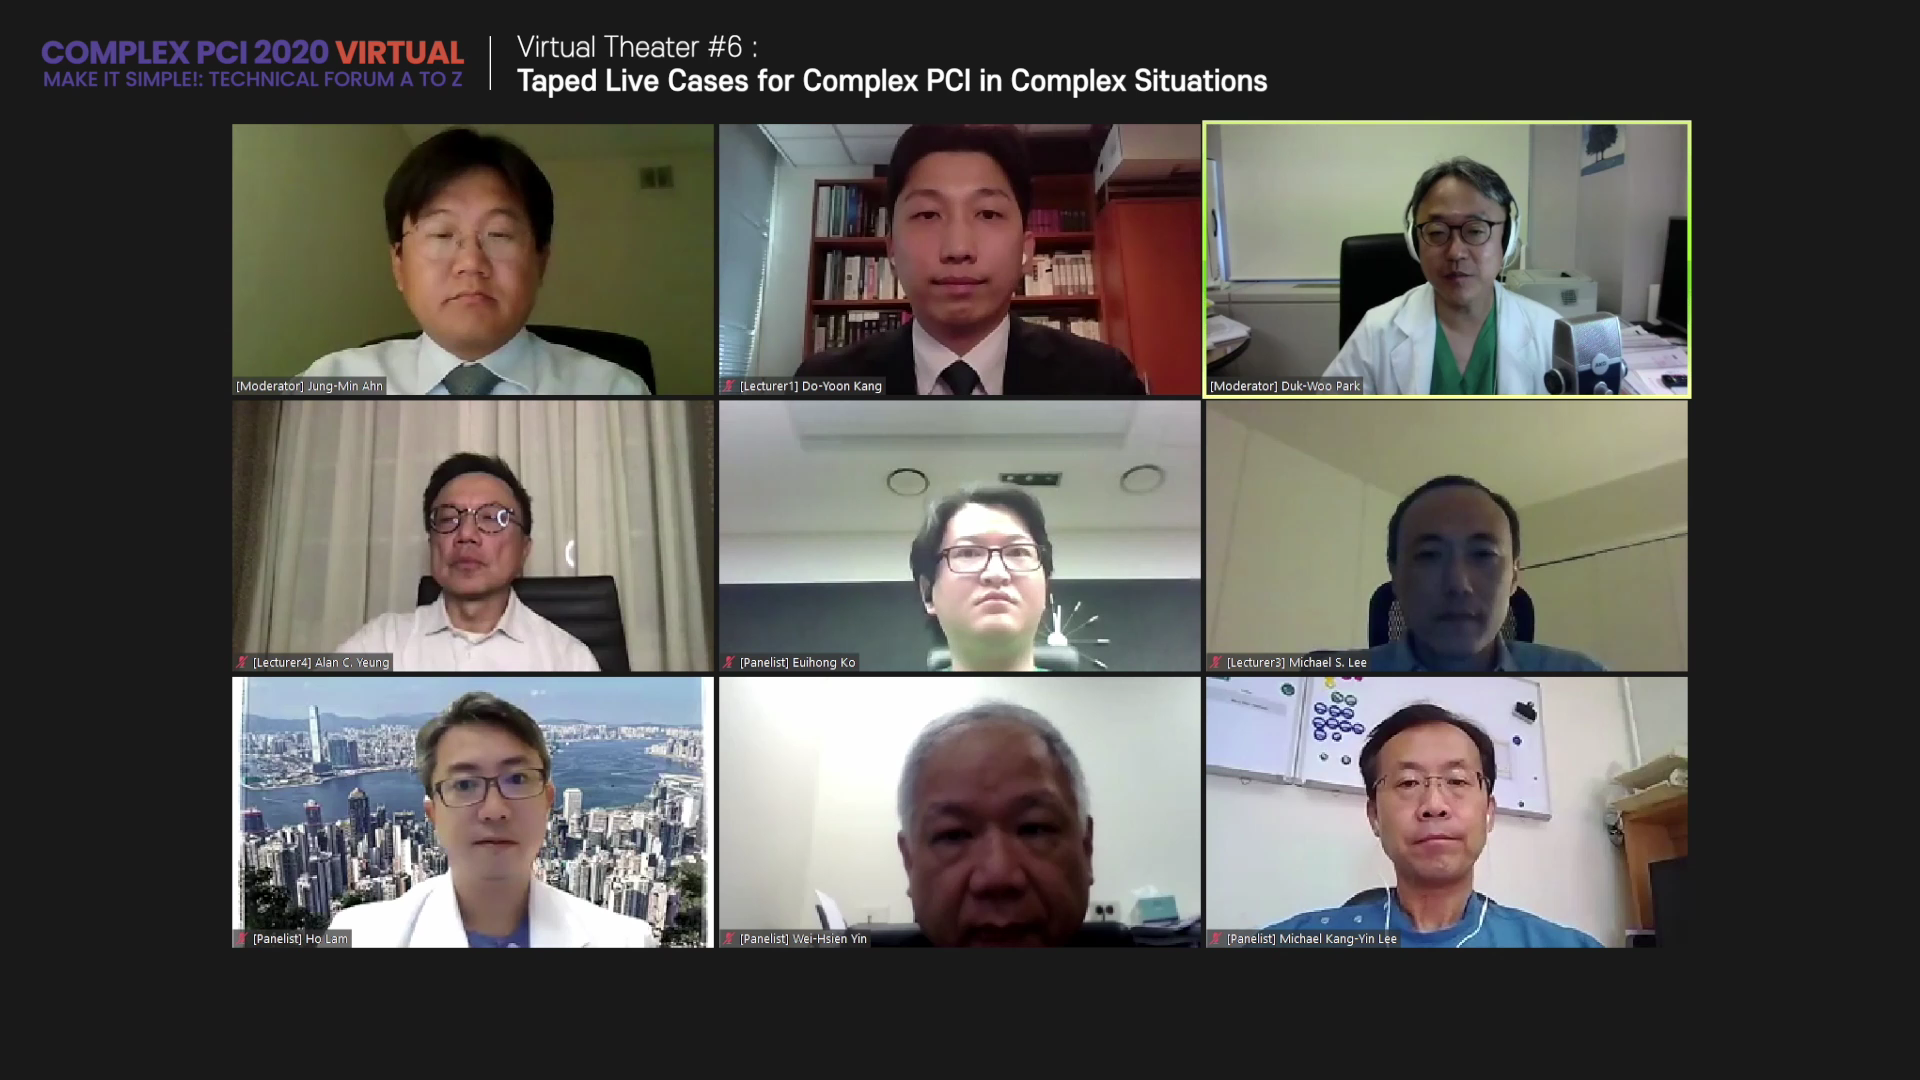 Virtual Theater #6: Taped Live Cases for Complex PCI in Complex Situations